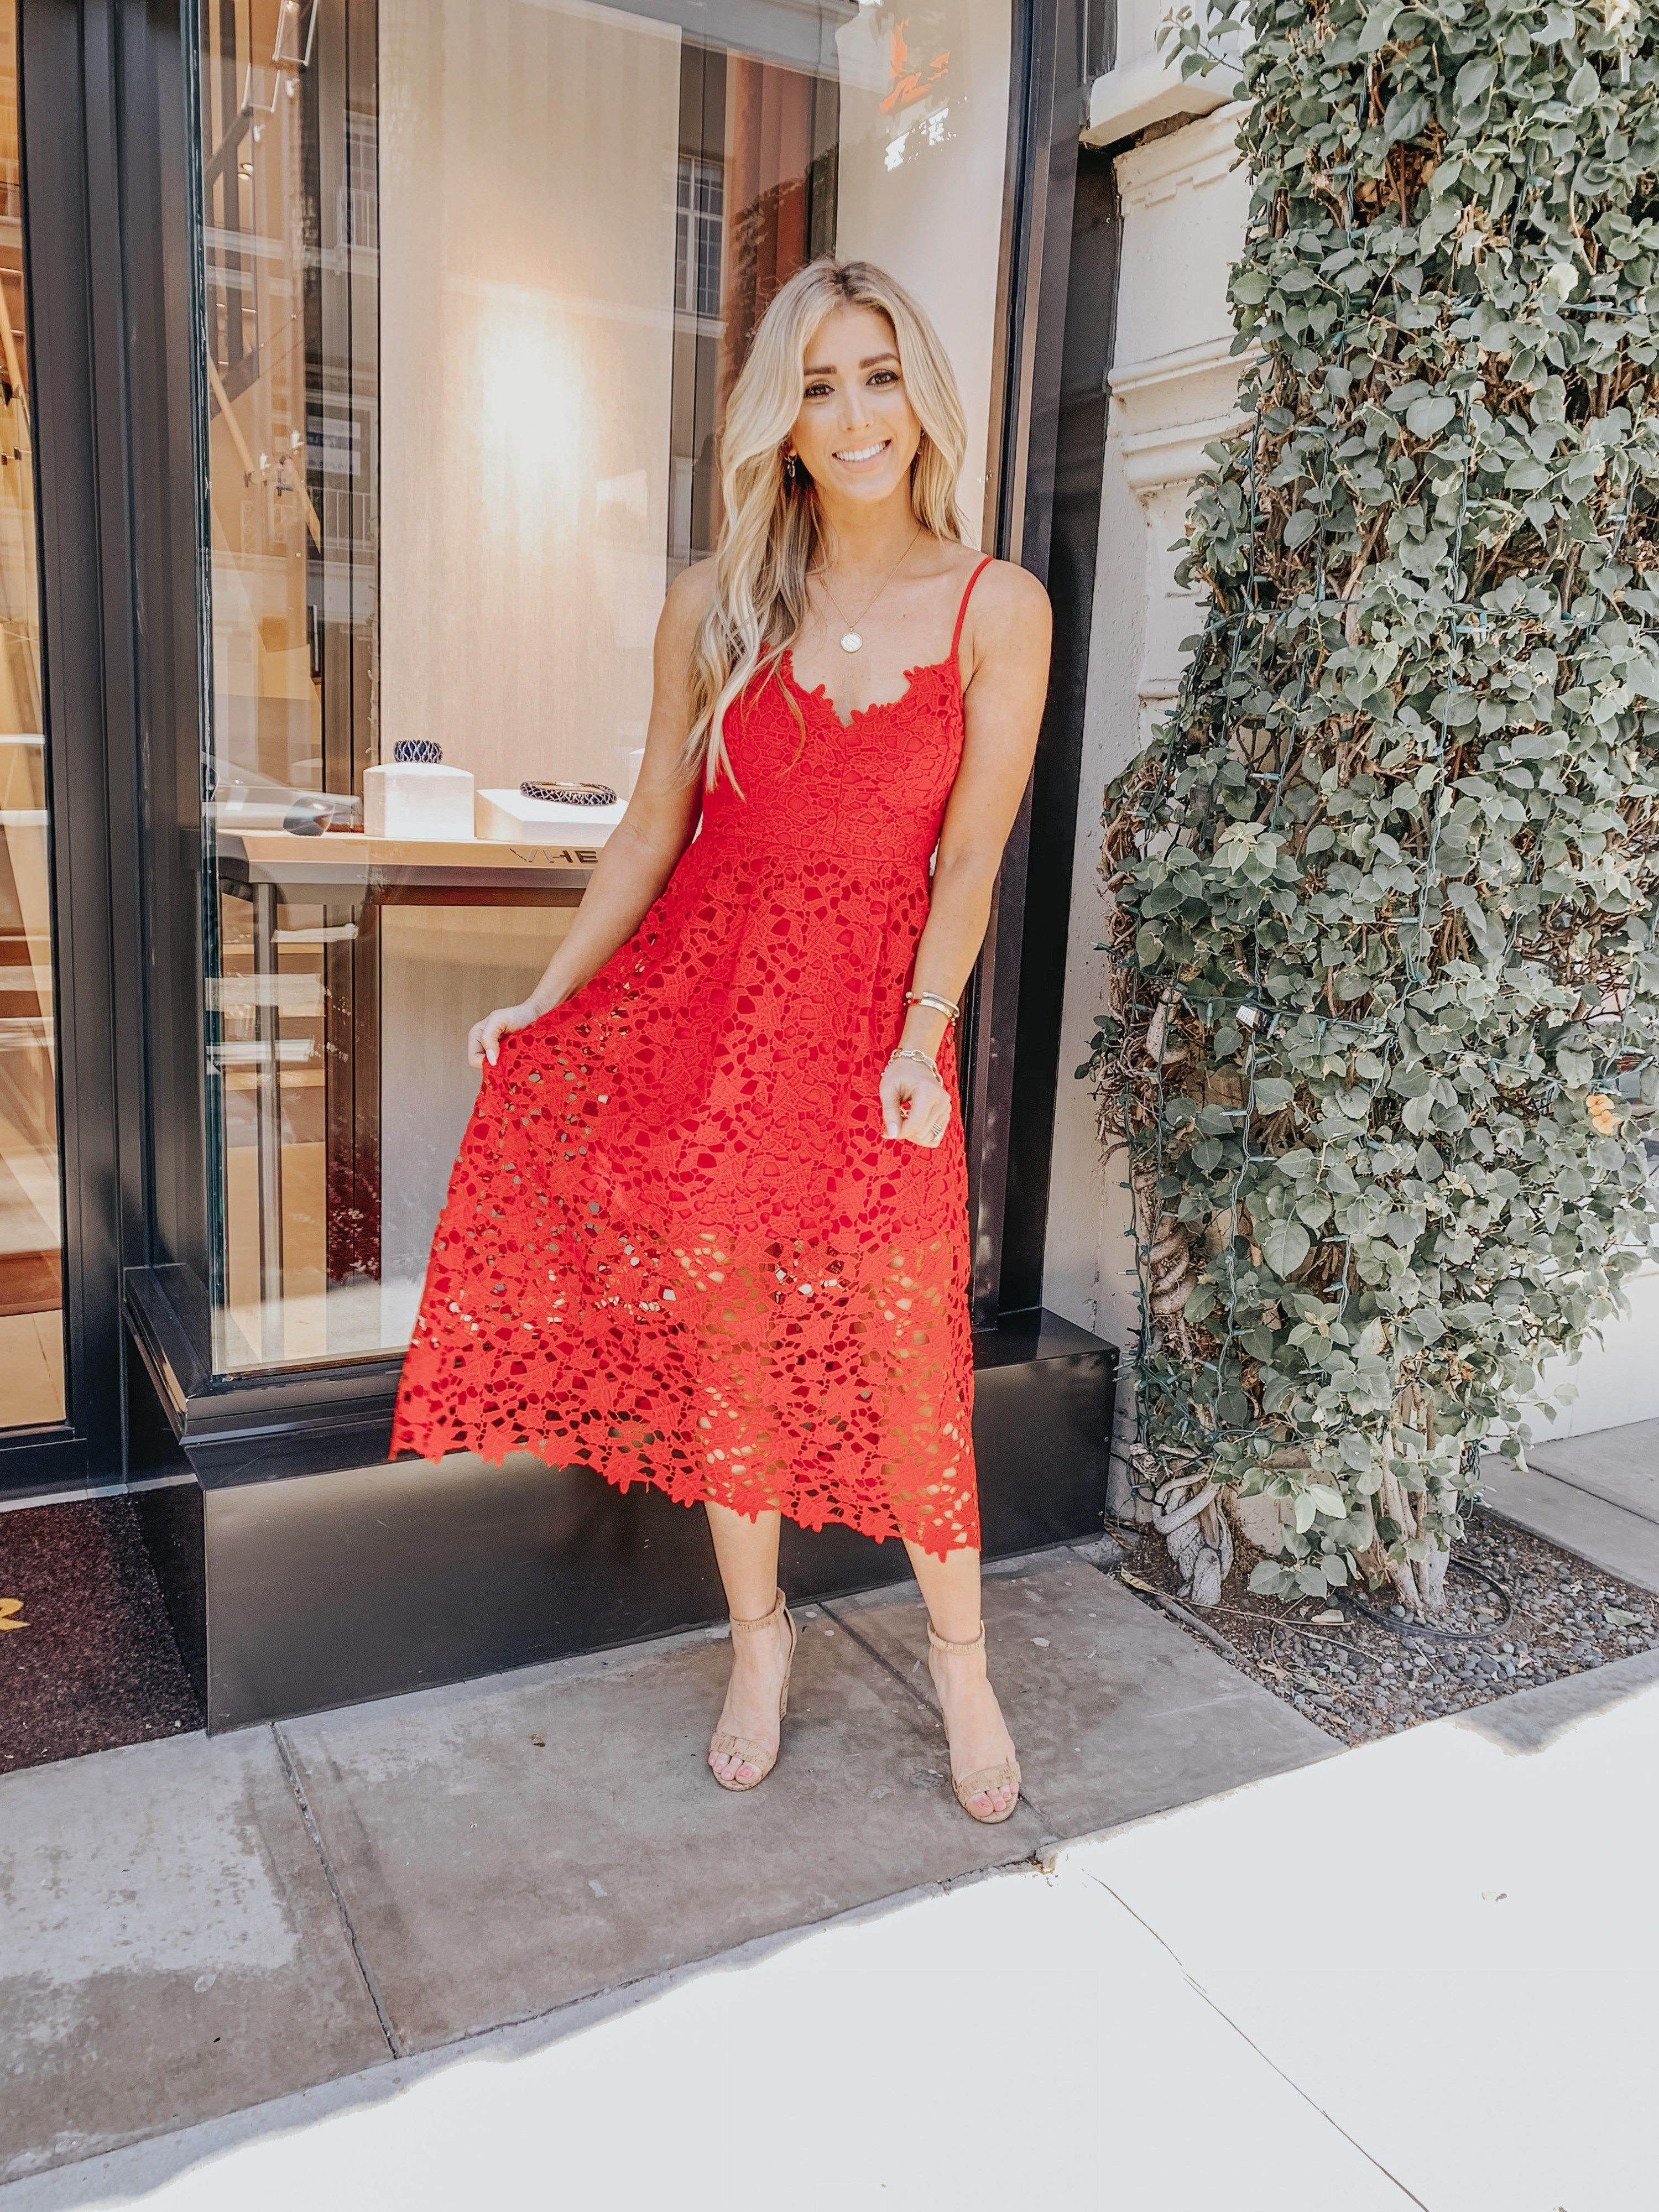 Valentines Day 2019 Always Meliss Red Dress Astr The Label Nordstrom Cute Red Dress For Vday Top 10 Blog Wedding Guest Dress Summer Dresses Wedding Guest Dress [ 4000 x 3000 Pixel ]